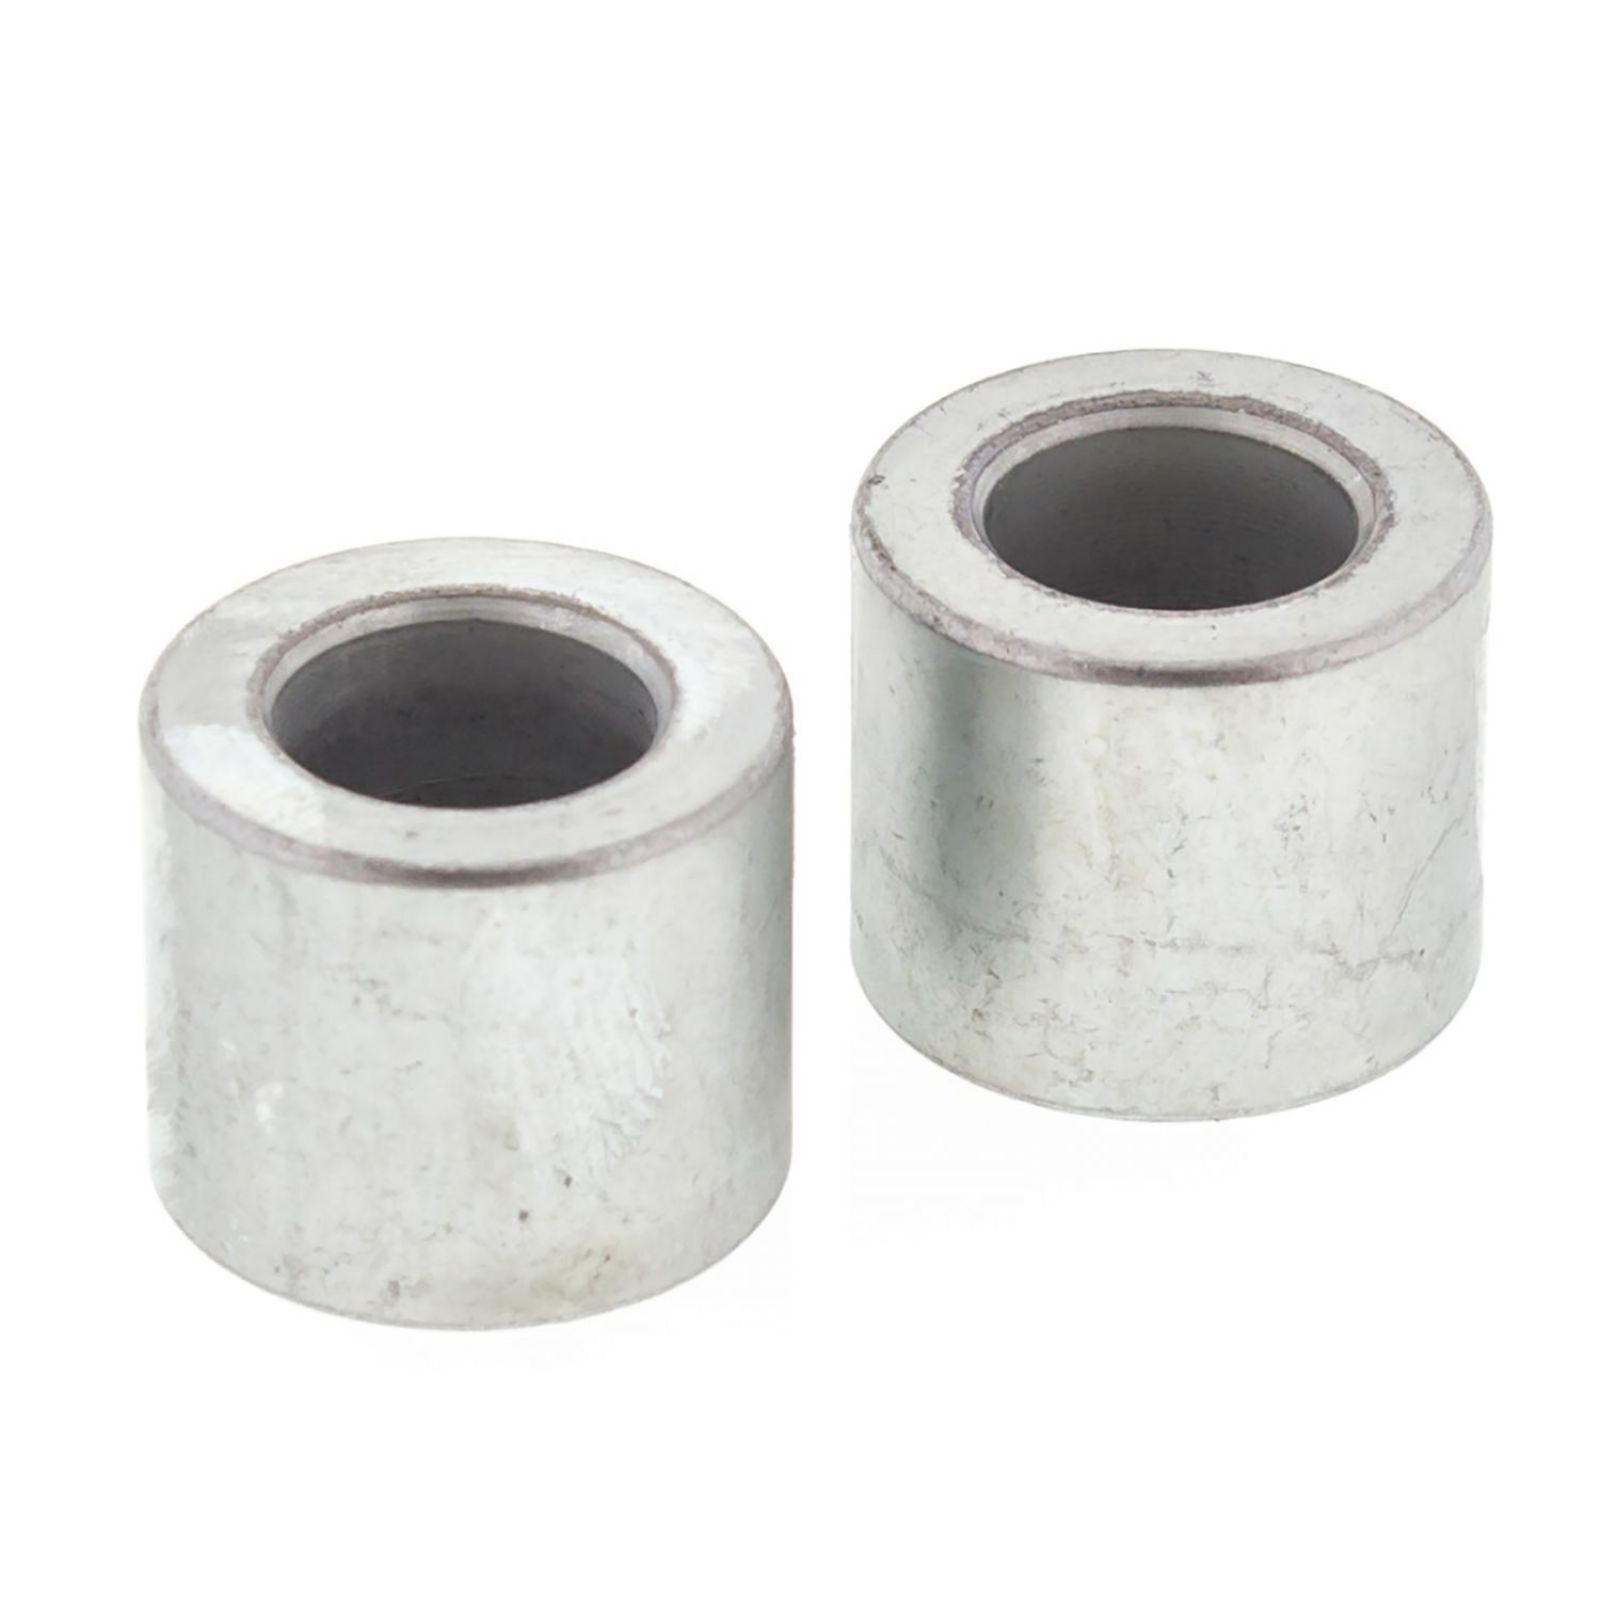 WRP Front Wheel Spacer Kits - WRP111001 image